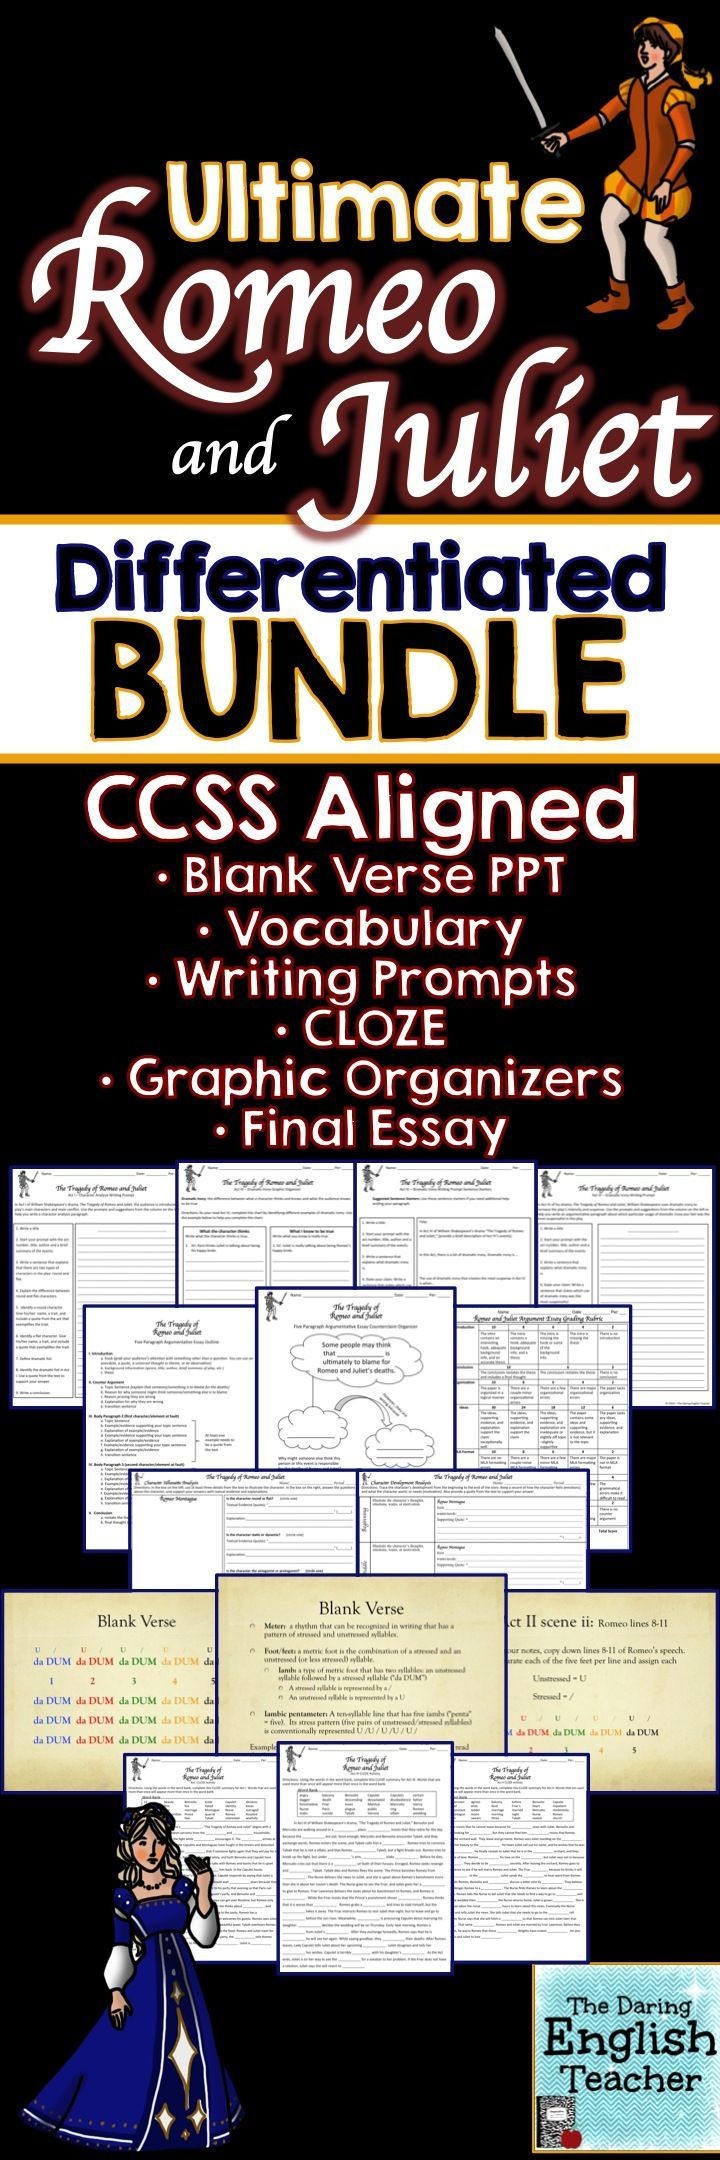 best ideas about high school writing prompts recently updated this romeo and juliet differentiated bundle includes everything you need